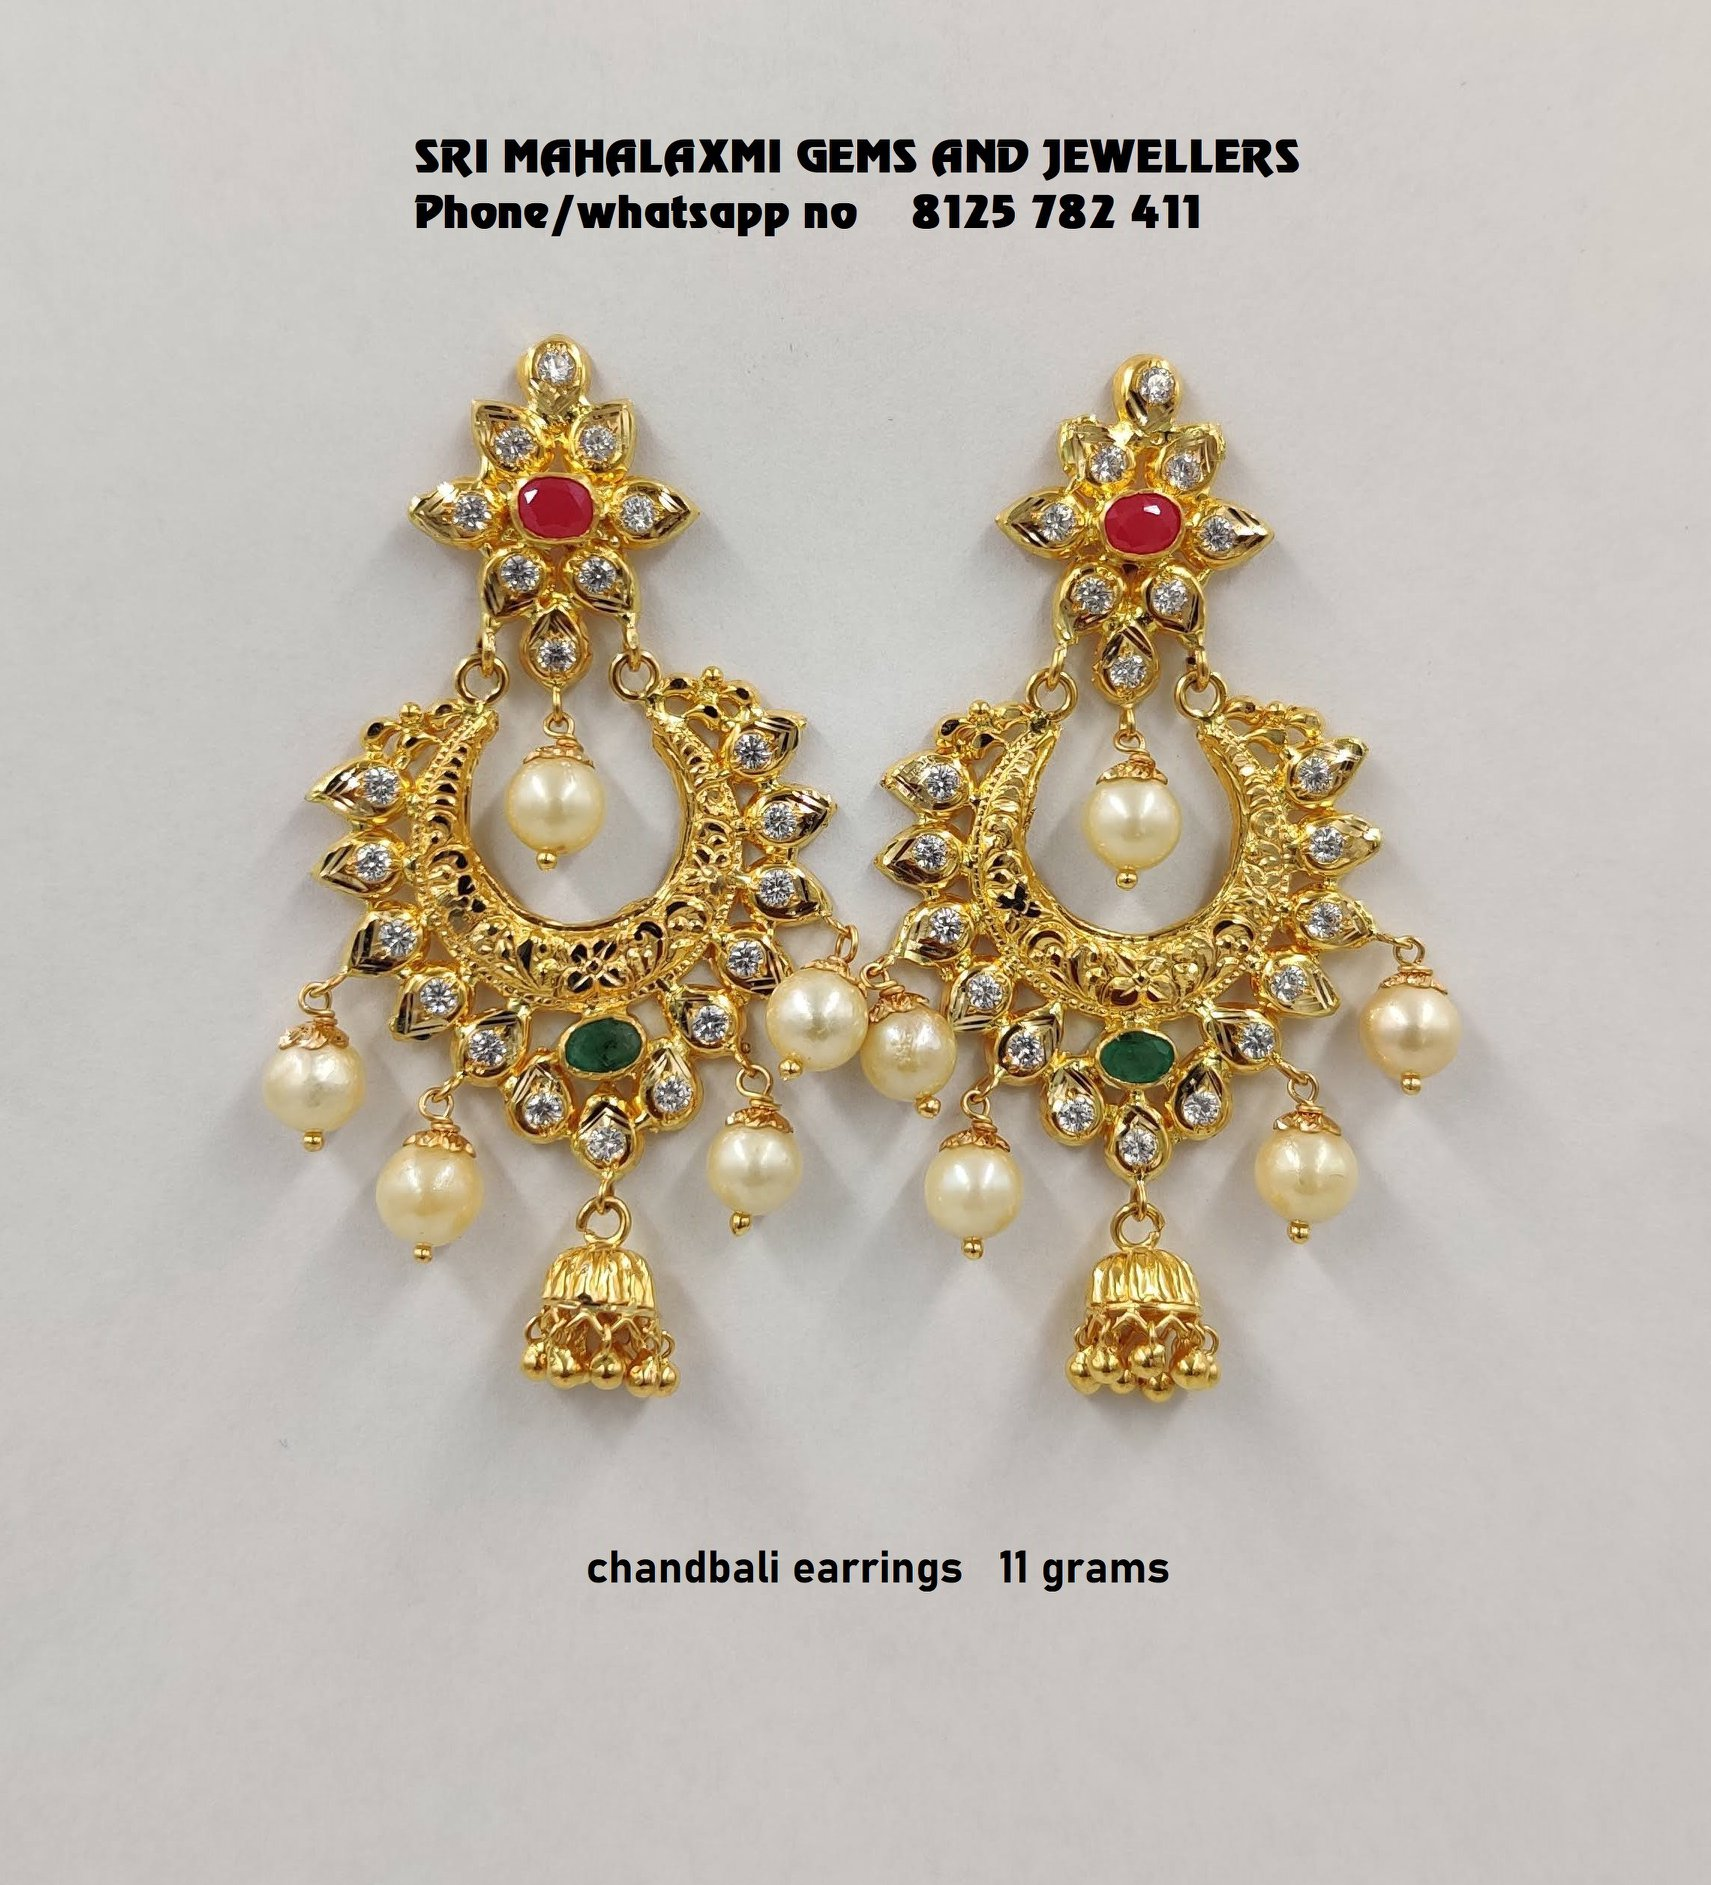 Stunning 22k gold chaandbali studded with precious stones and pearl hangings.. 2020-09-15